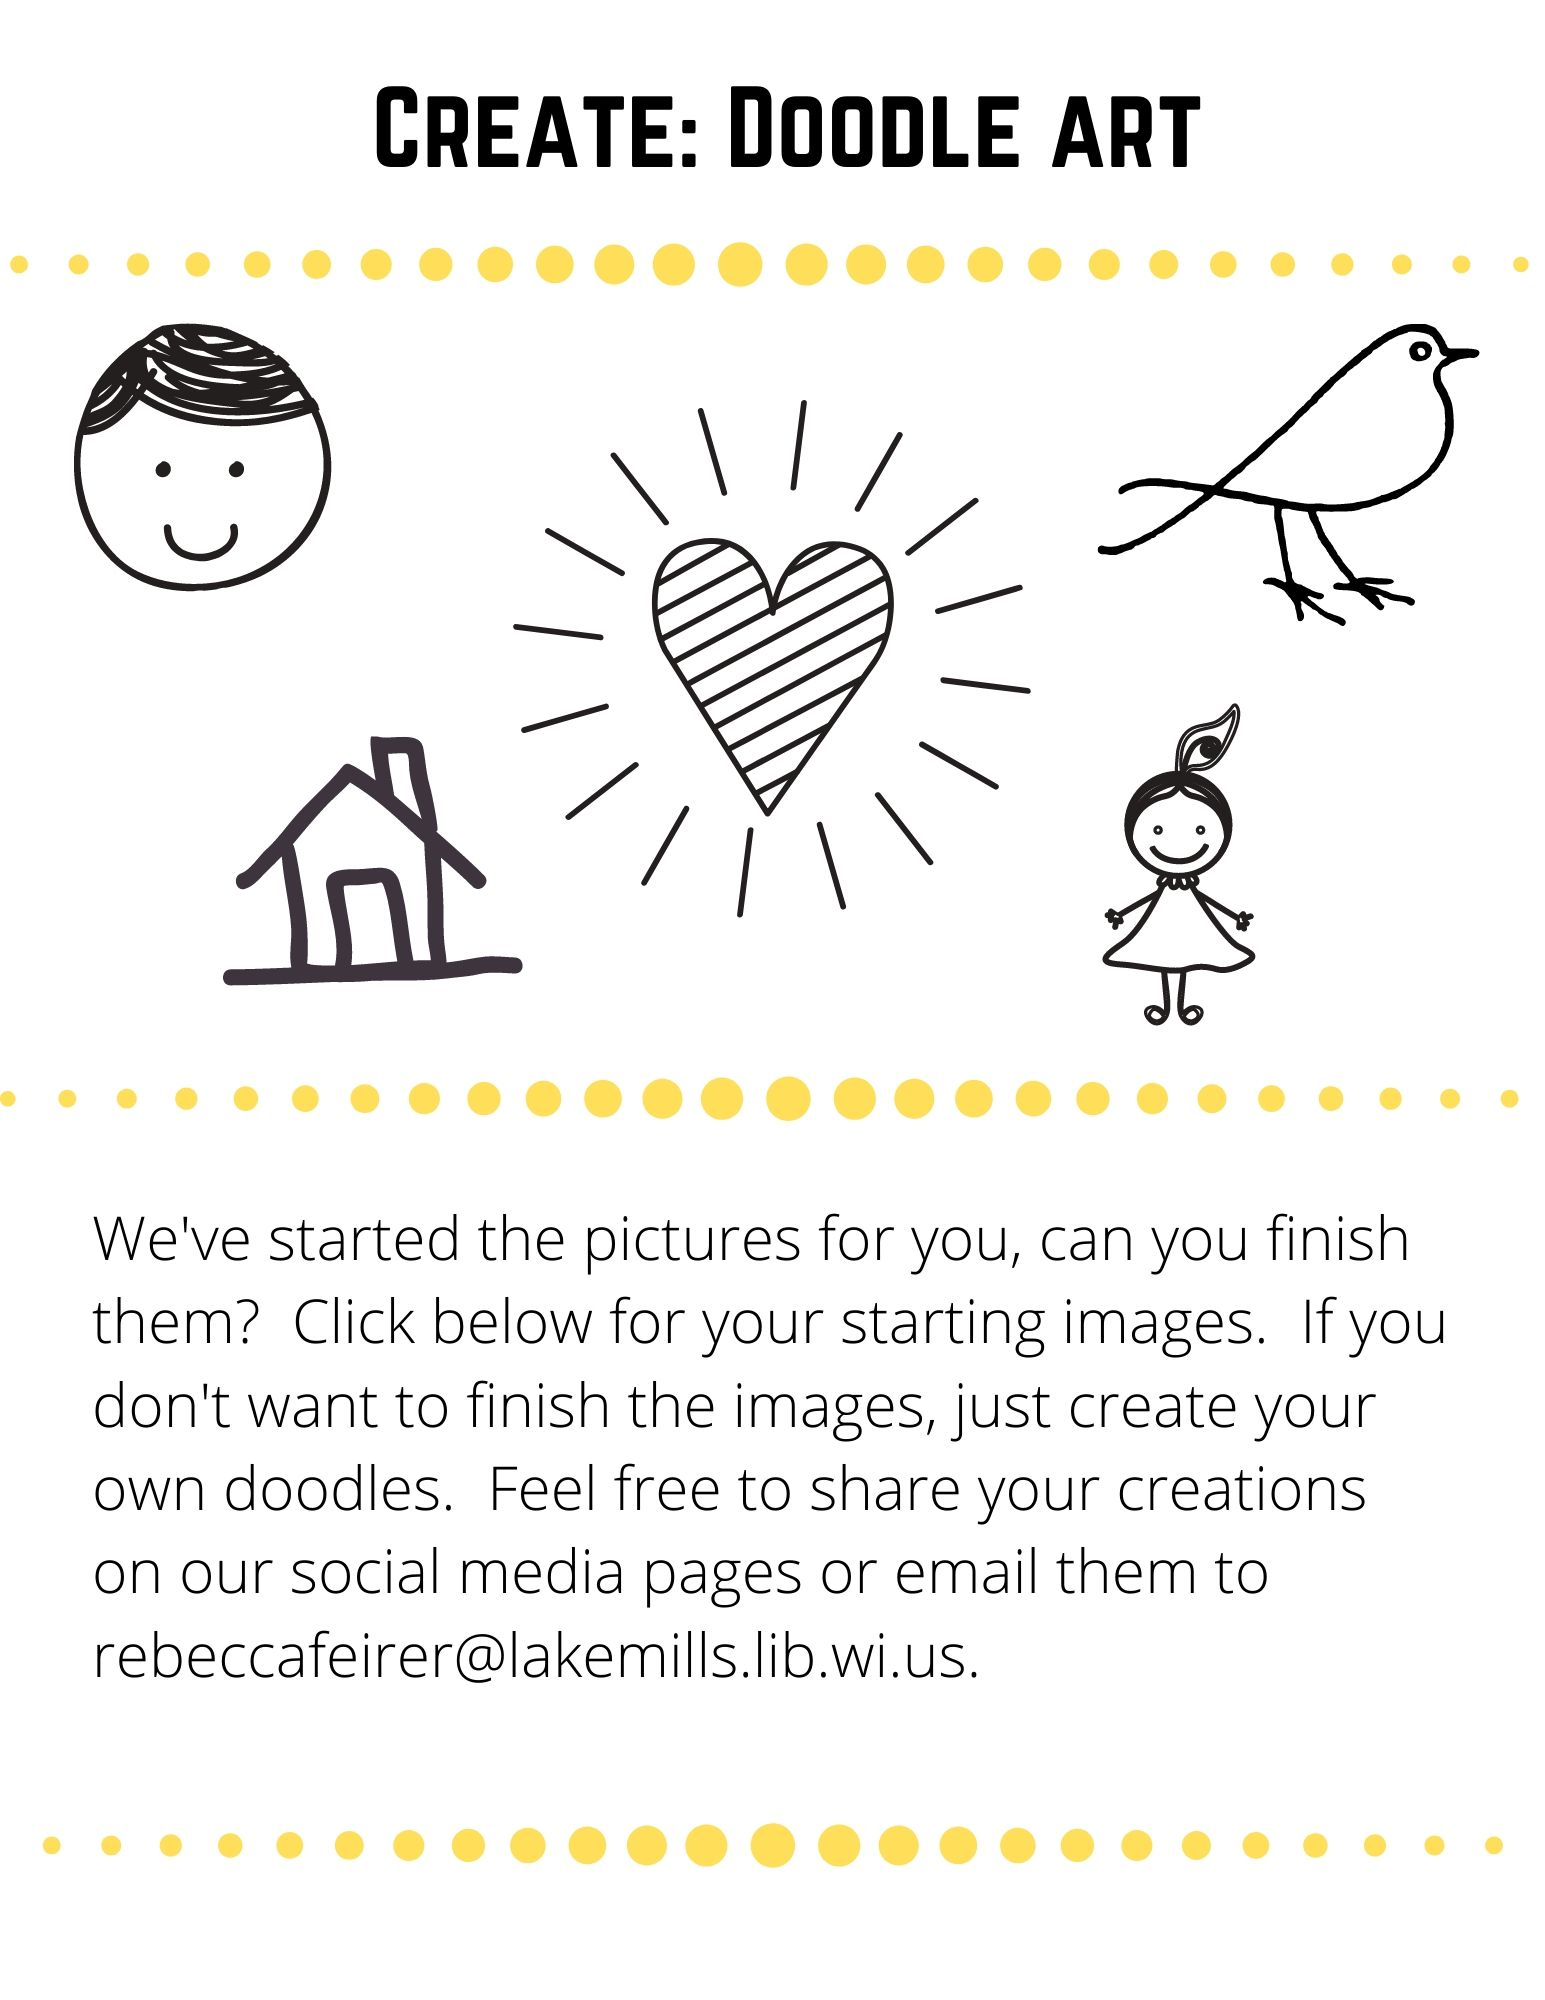 Create: We've started the pictures for you, can you finish them?  Click below for your starting images.  If you don't want to finish the images, just create your own doodles.  Feel free to share your creations on our social media pages or email them to rebeccafeirer@lakemills.lib.wi.us.